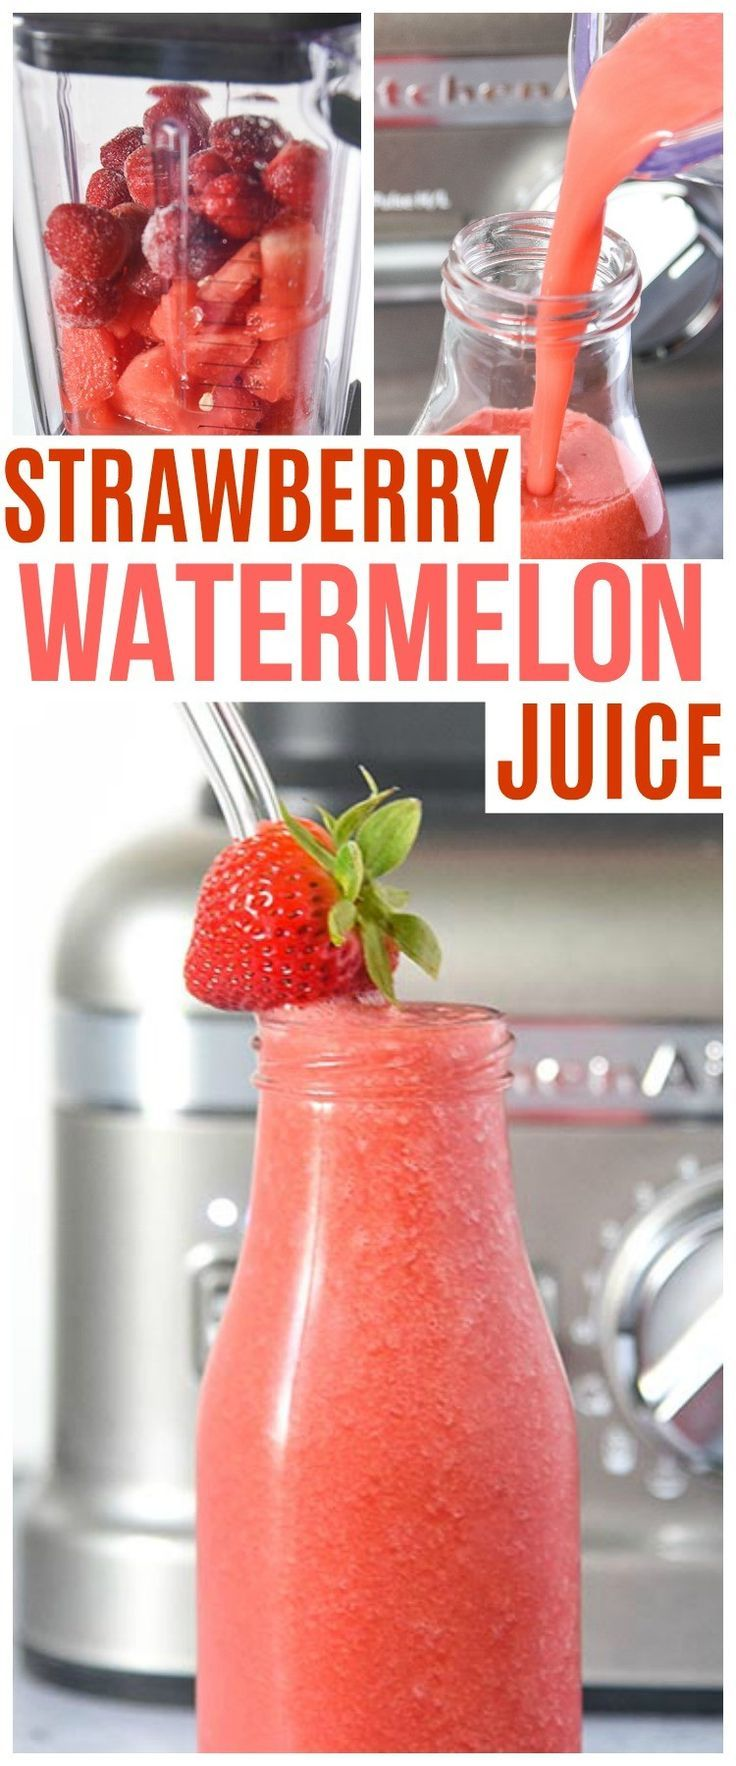 This StrawberryWatermelon juice is made with a high speed blender in less than 3 minutes! Raw delicious and nutritious juice drink recipe. via @KnowYourProduce